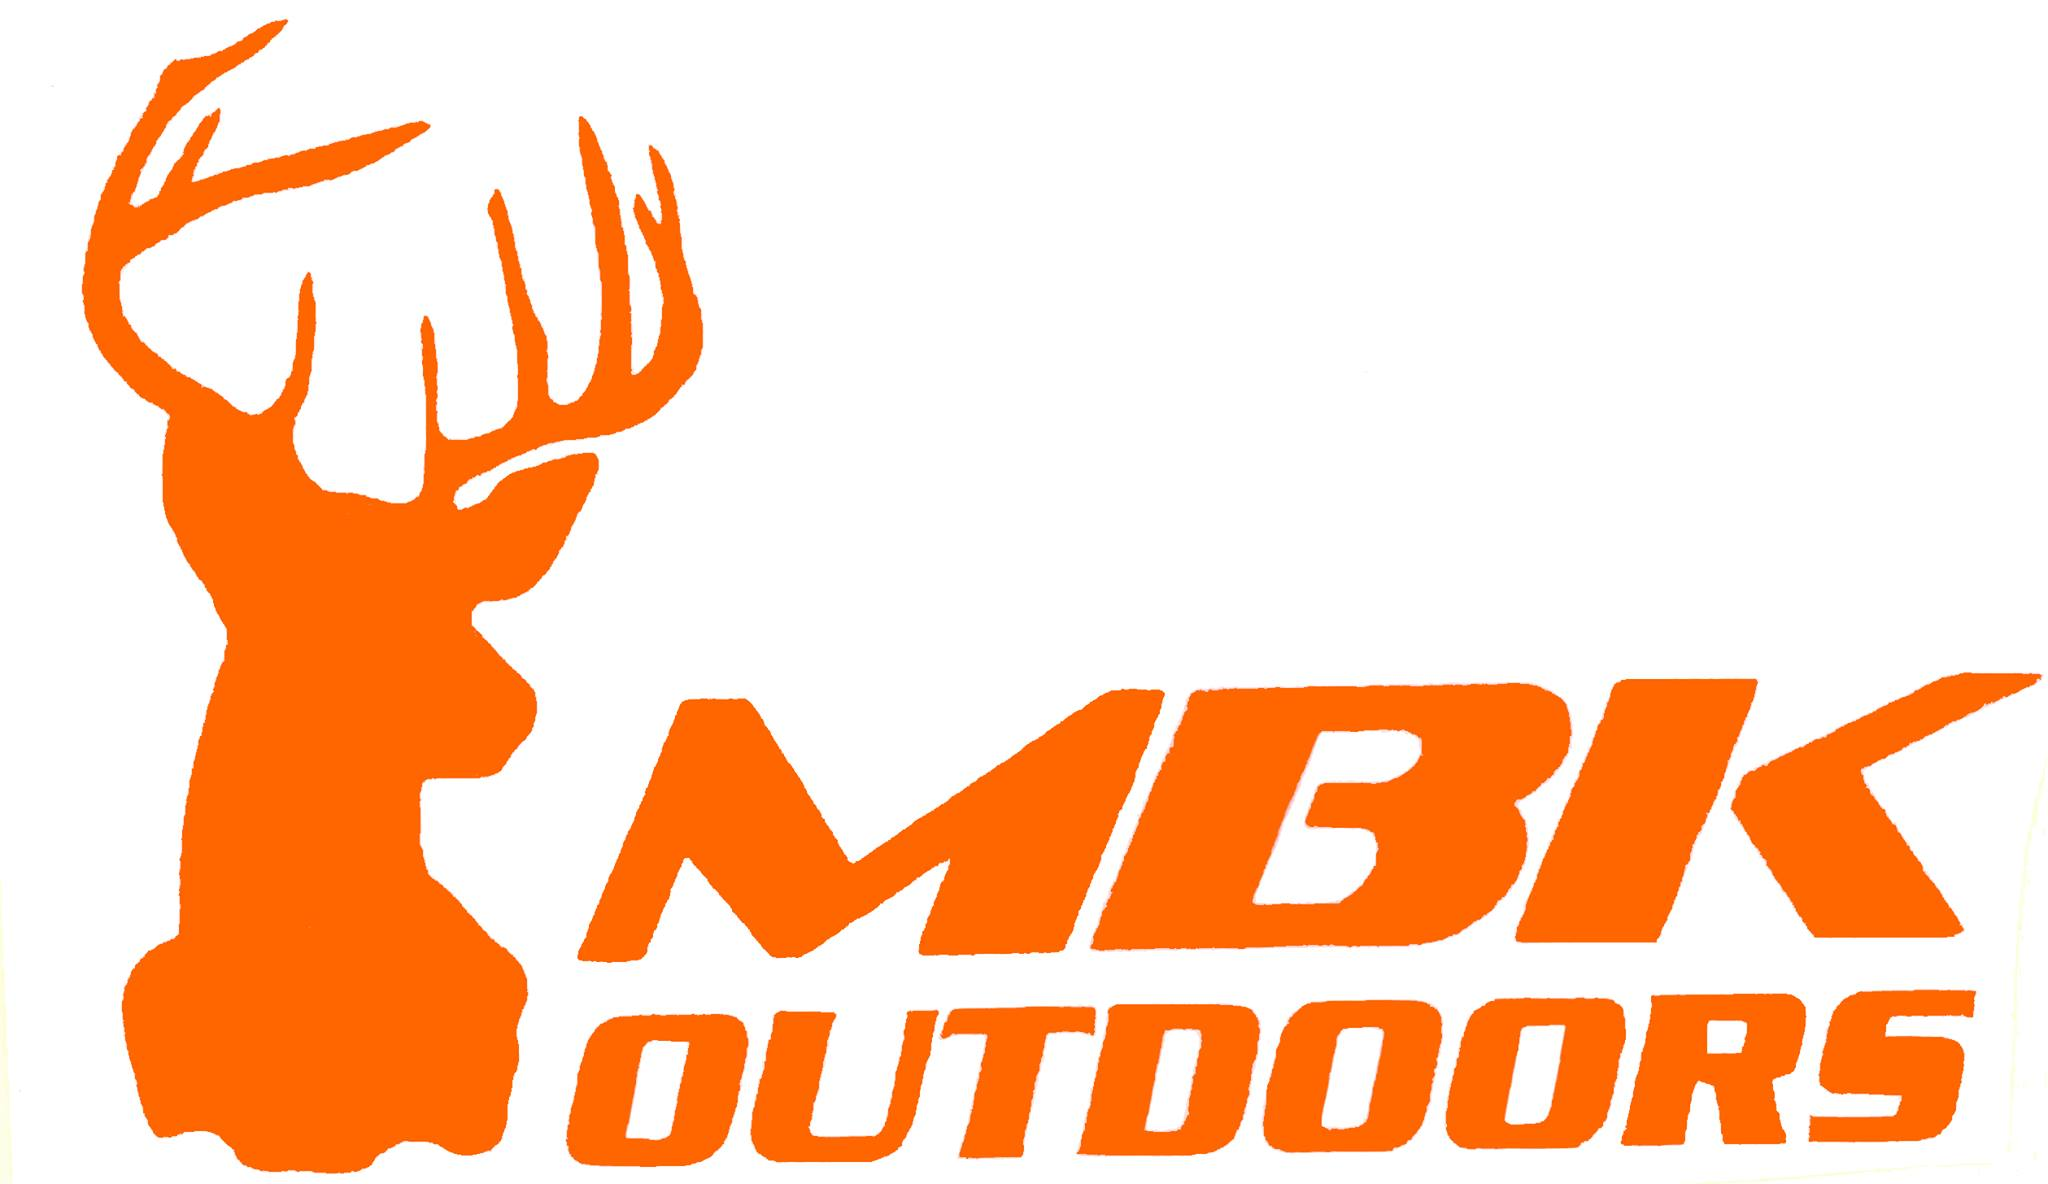 Thompson RV Park, Barbourville, KY   The 2nd MBK Classic is an Open Registration 3D archery tournament. Competitive divisions include: Men's Open (45 yard max), Women's Open (45 yard max), Men's Bowhunter (40 yard max), Women's Bowhunter (40 yard max), and Youth Bowhunter (30 yard max). All divisions will be all KNOWN YARDAGE. Registration is $20 for the adult divisions, $10 for Youth Bowhunter.  **NEW FOR THIS YEAR** $$ Payout to top finishers in the Adult Open Divions, and AWESOME Hunting equipment prizes for top finishers in the Adult Bowhunter Divisions